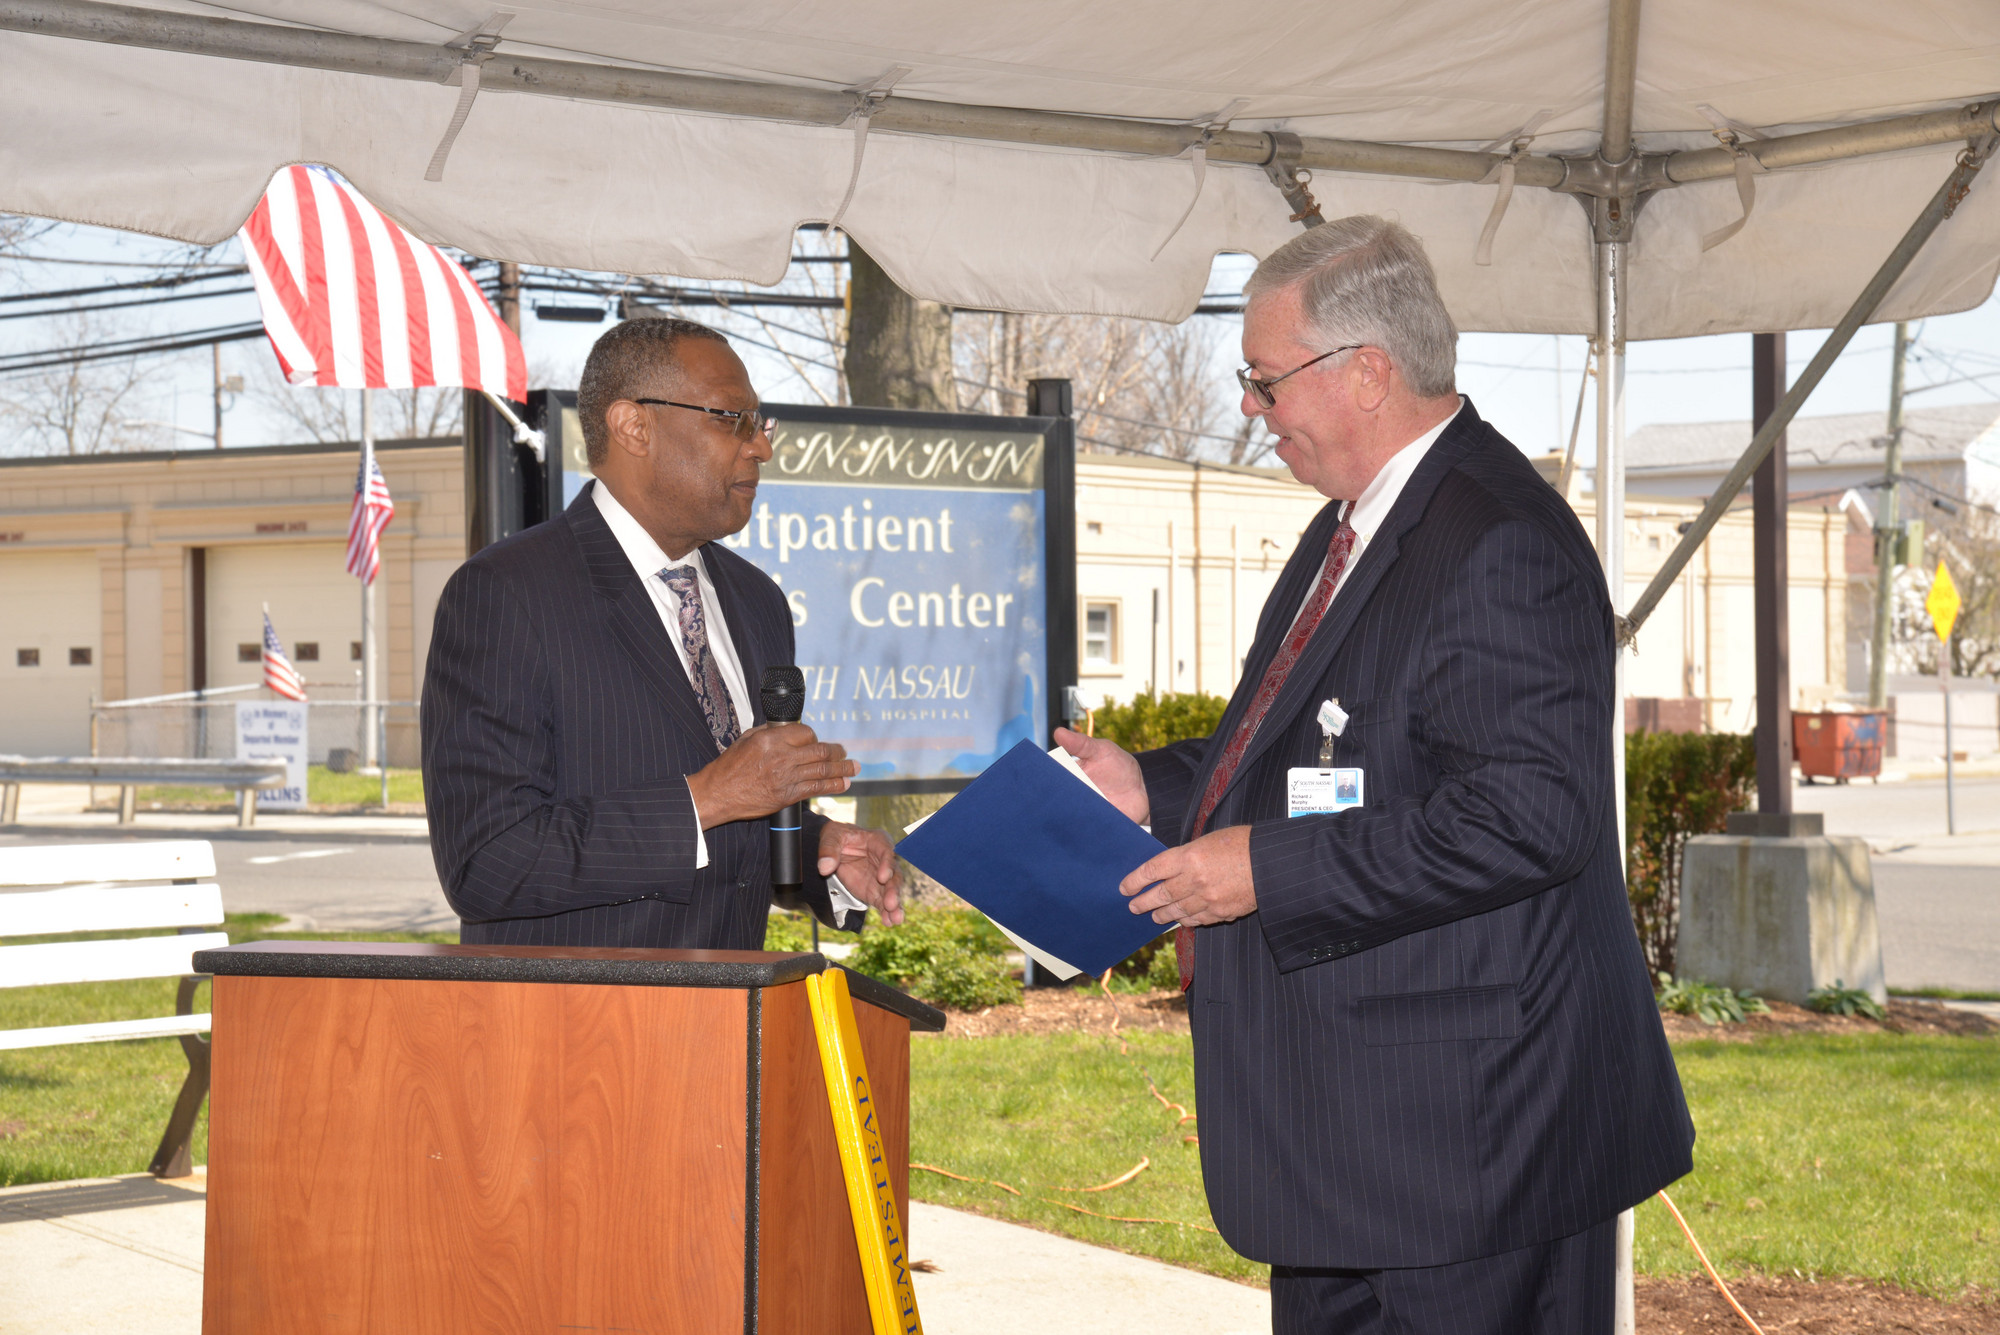 Wayne Hall, (left) the mayor of Hempstead and a patient at the dialysis center, spoke with CEO Murphy